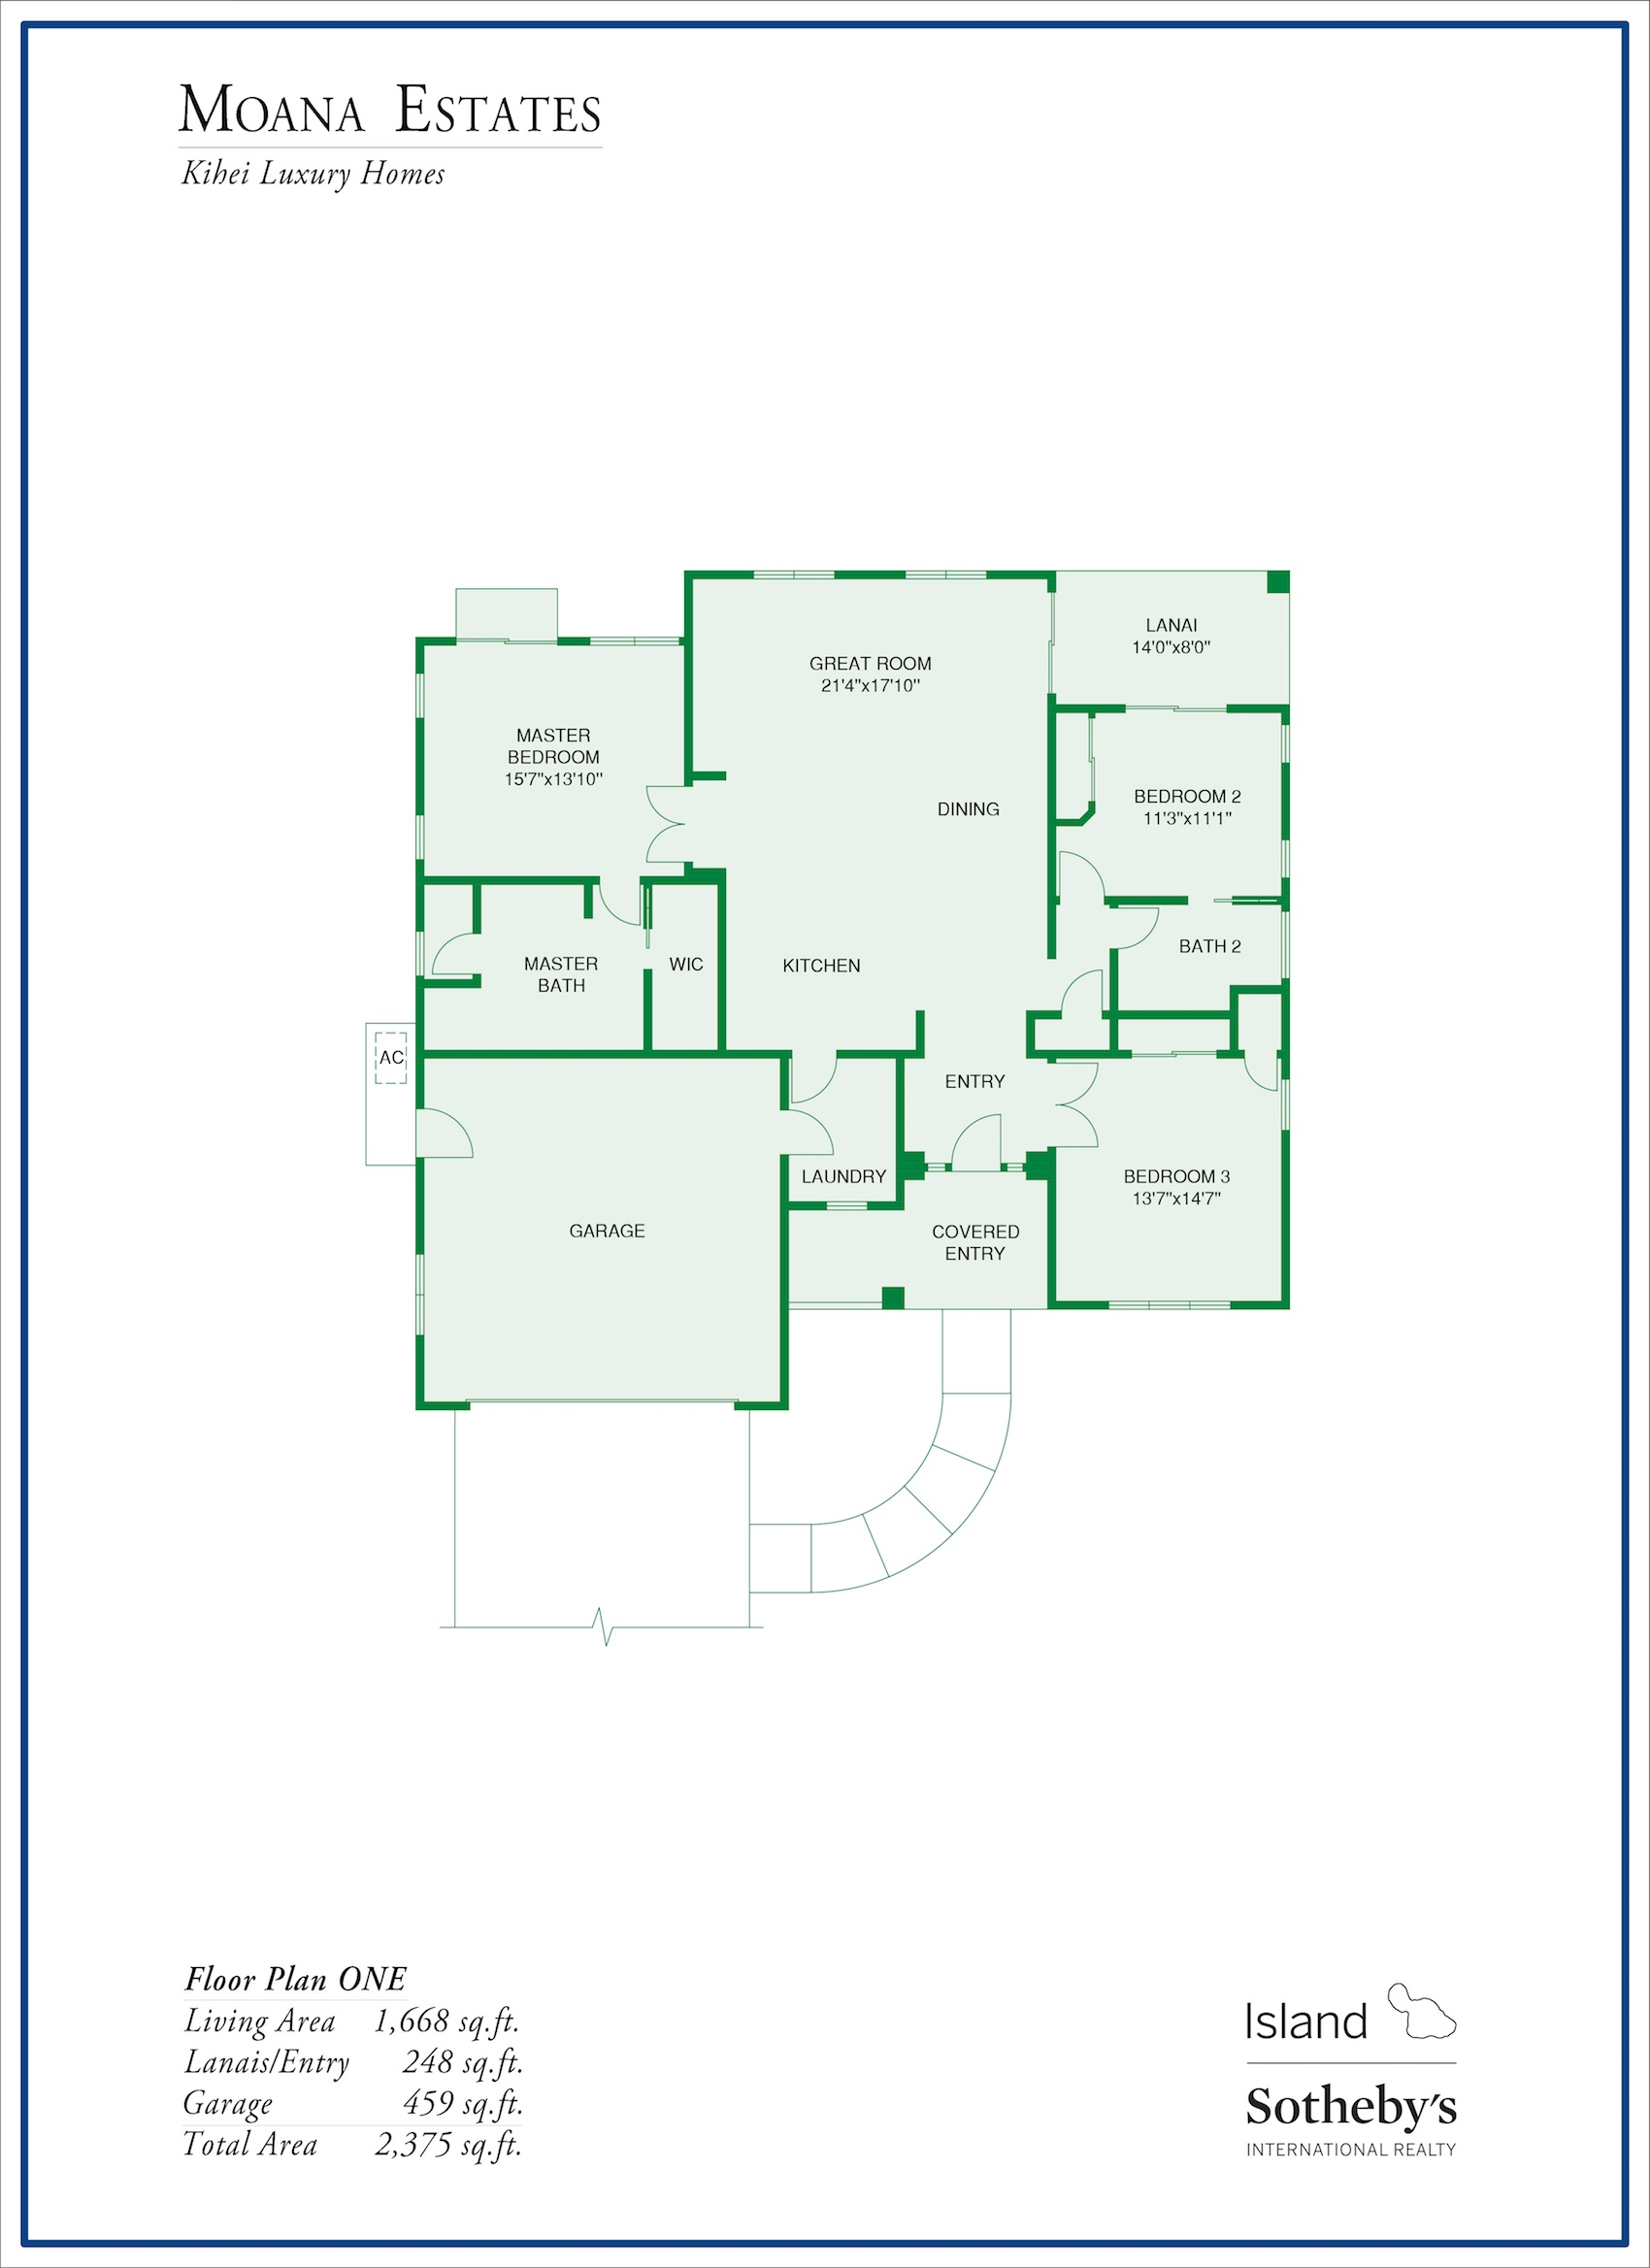 Moana Estates Floor Plan 1